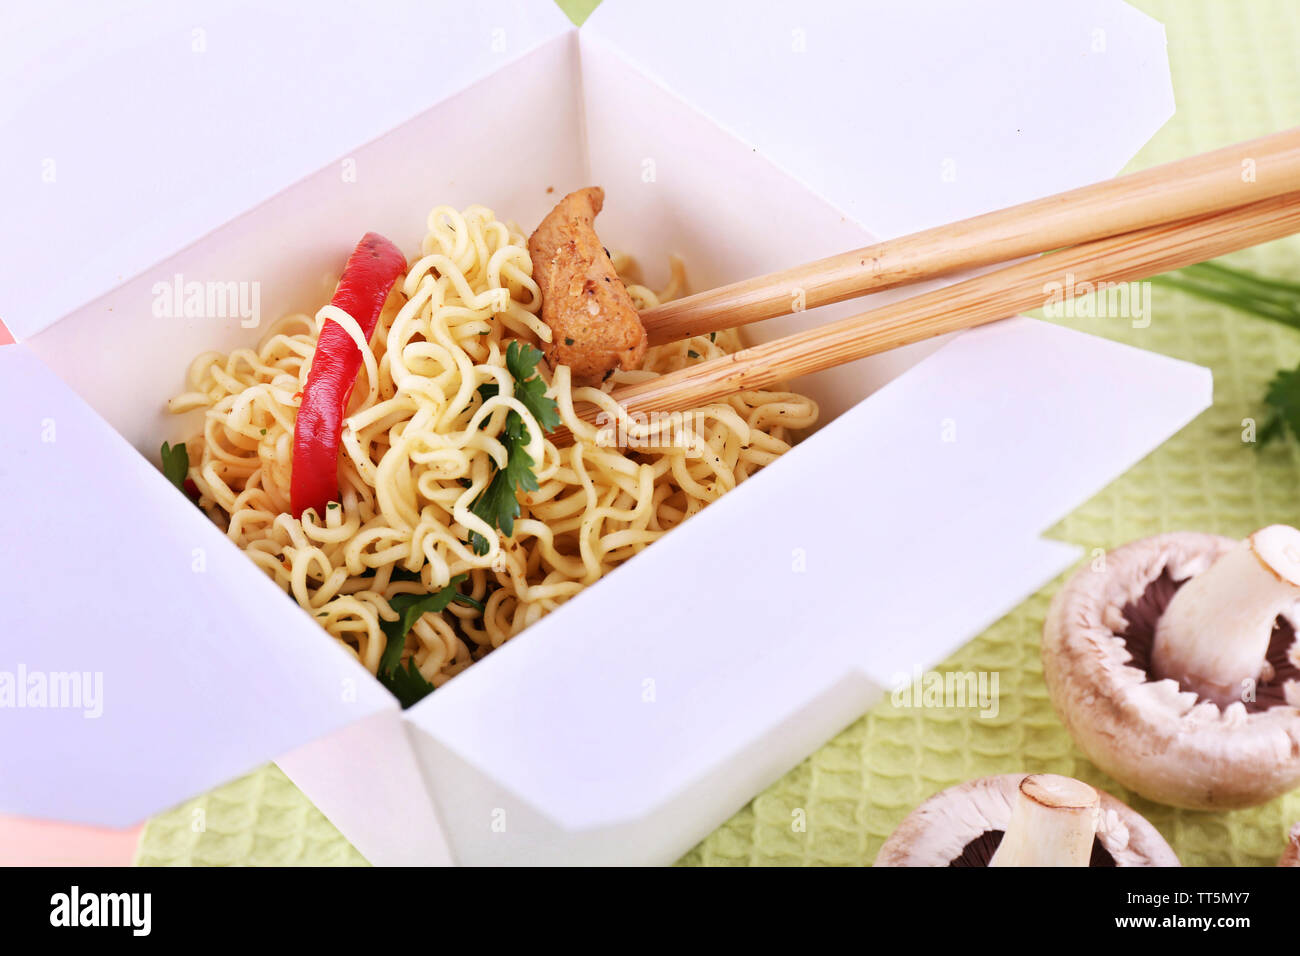 Chinese noodles in takeaway box on fabric background - Stock Image